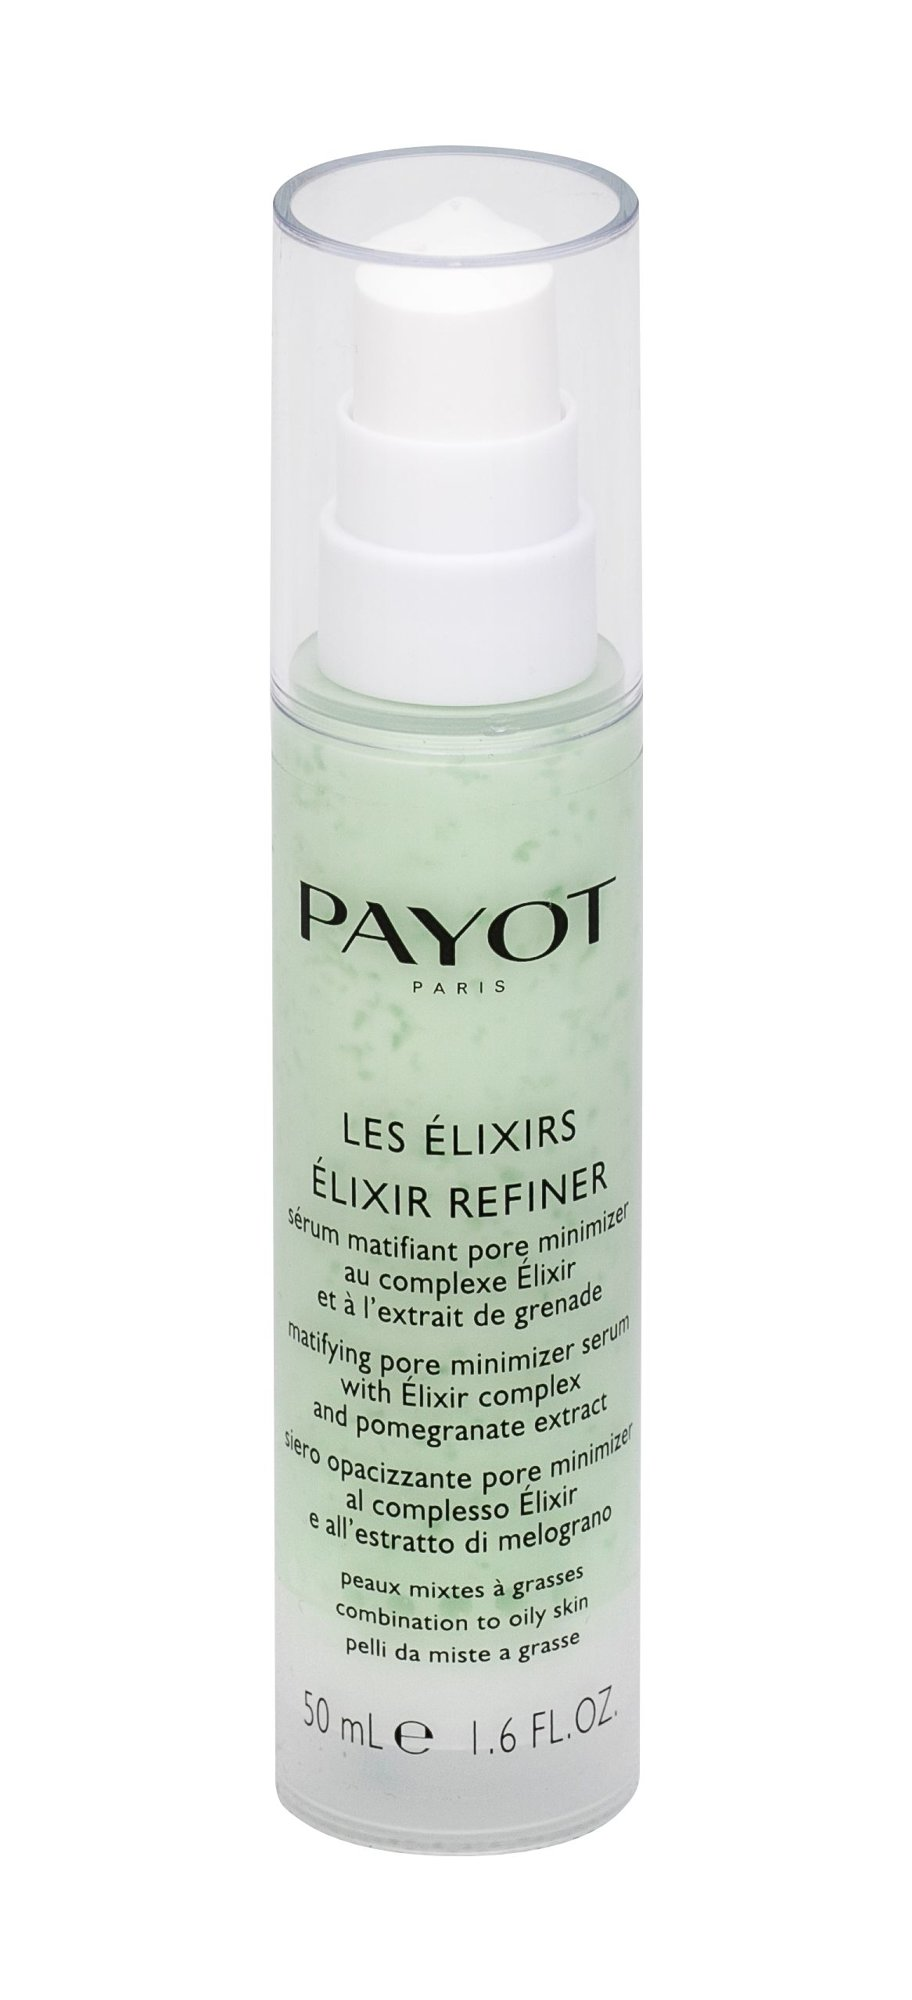 PAYOT Les Elixirs Skin Serum 50ml